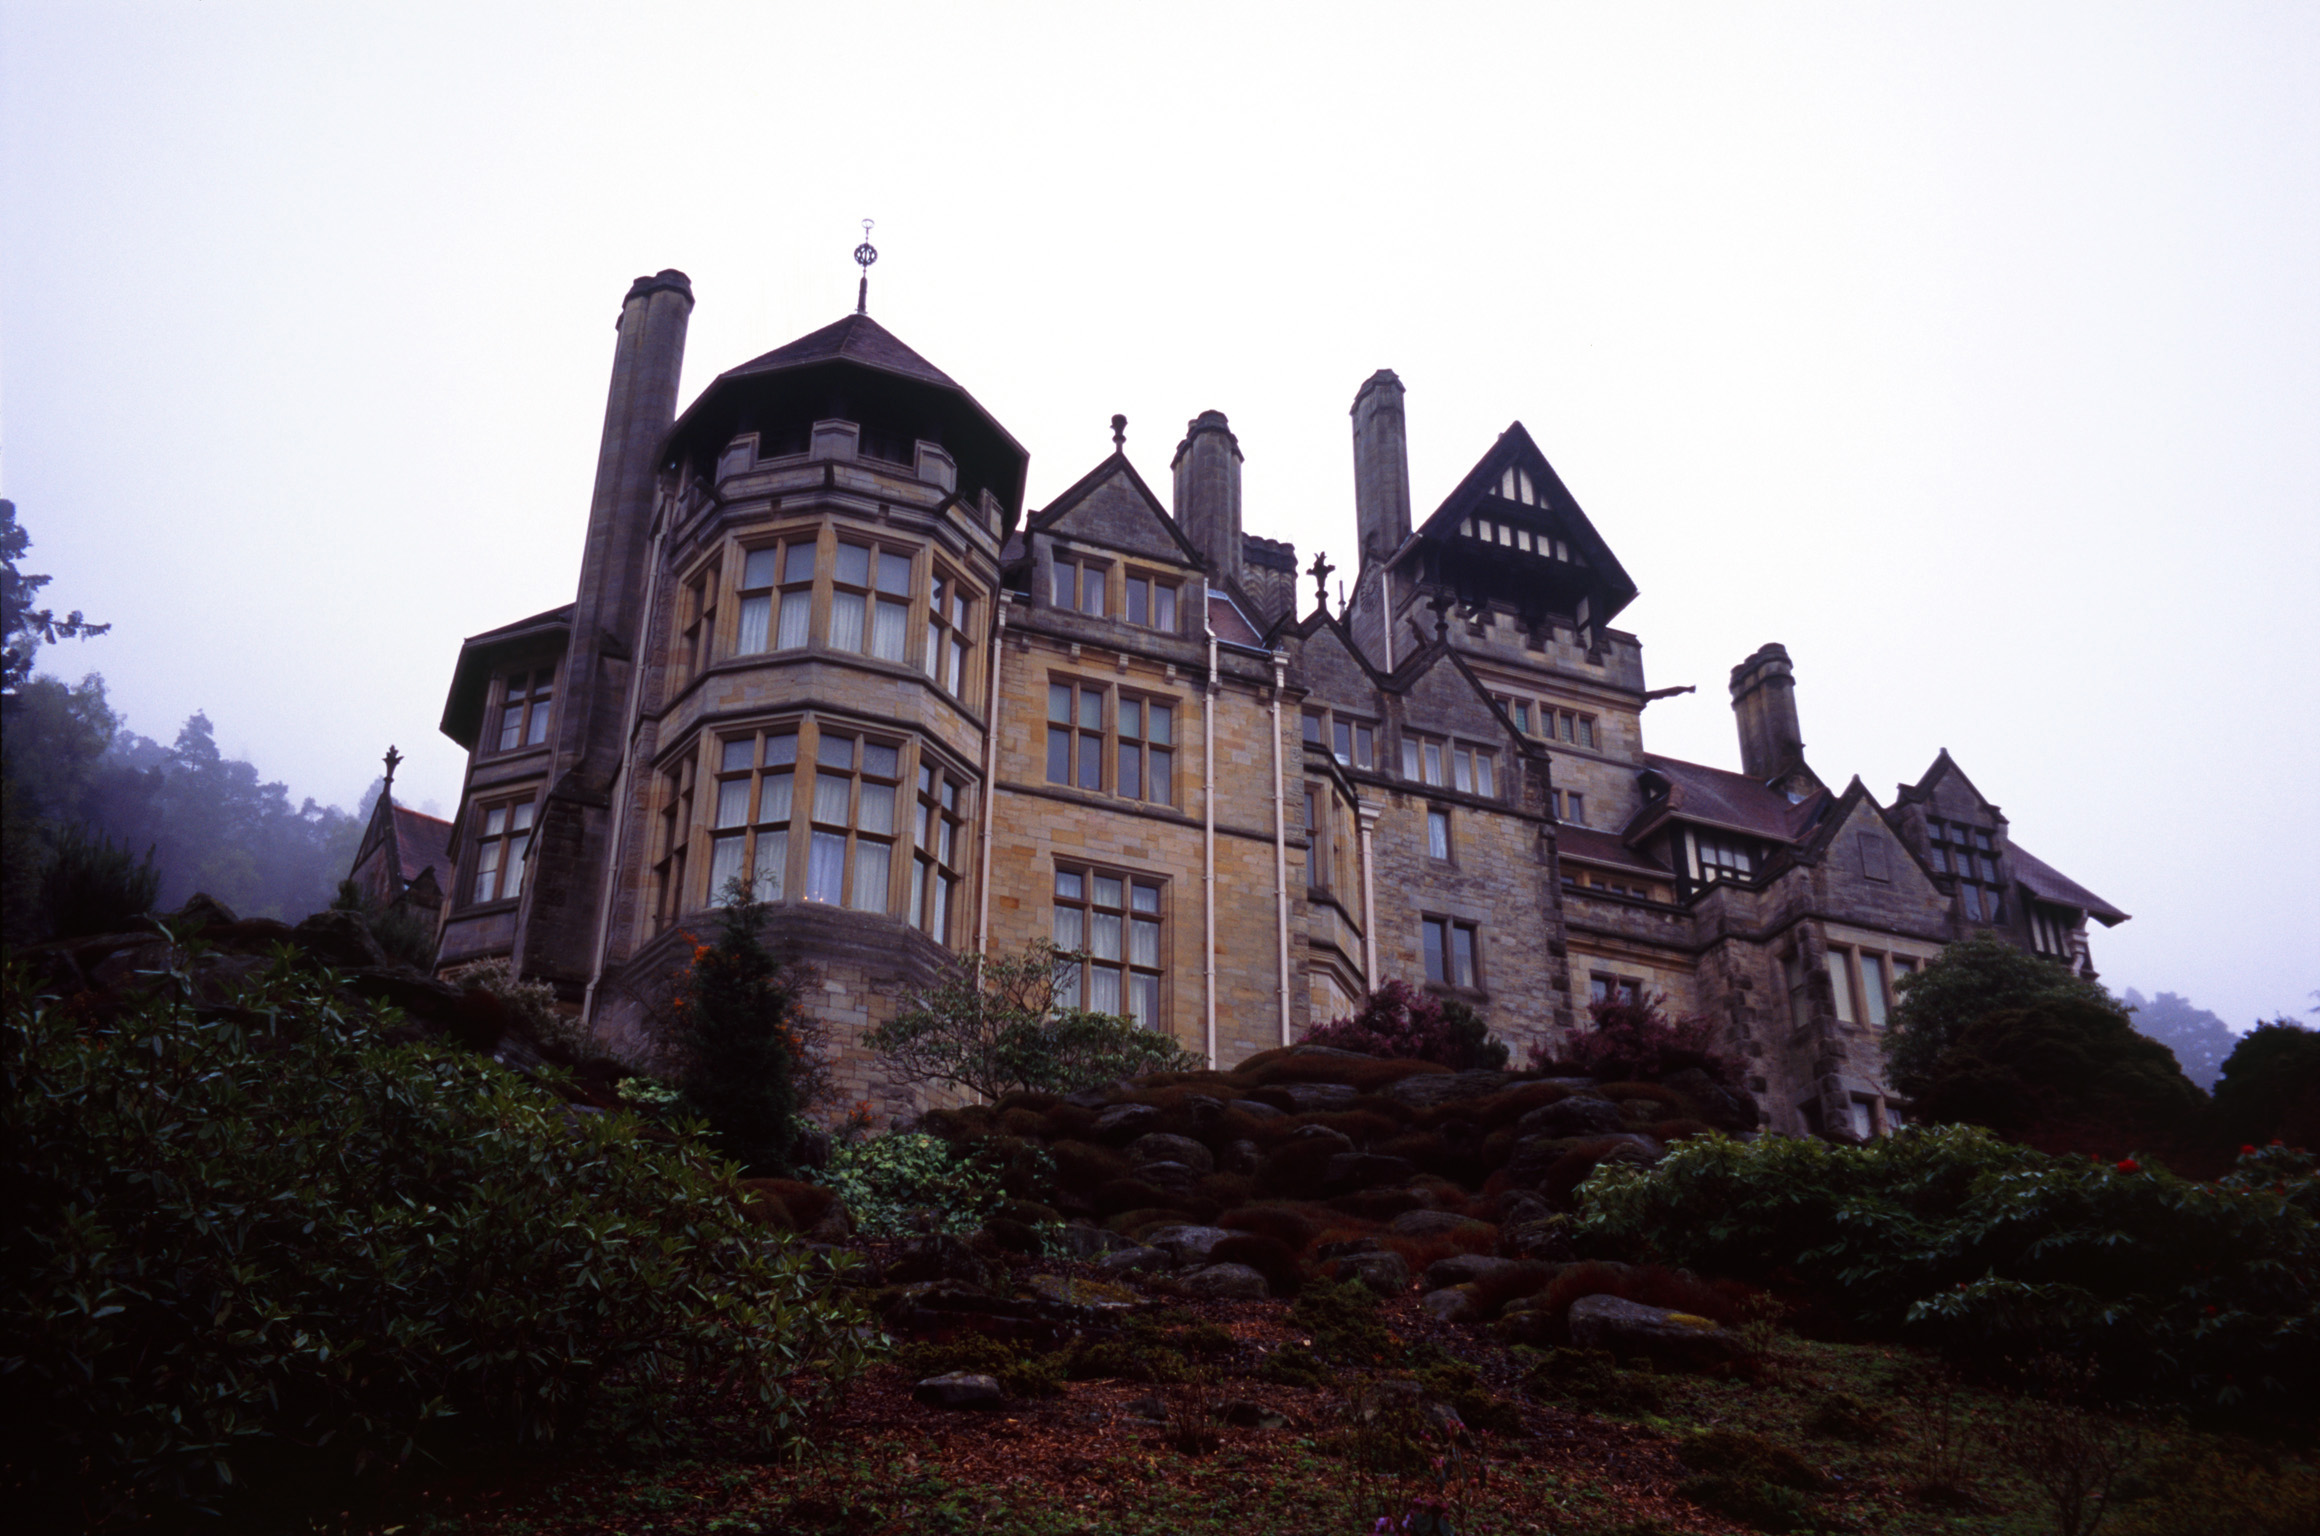 View on the skyline of the large stone facade of Cragside stately home, the first house to have electricity